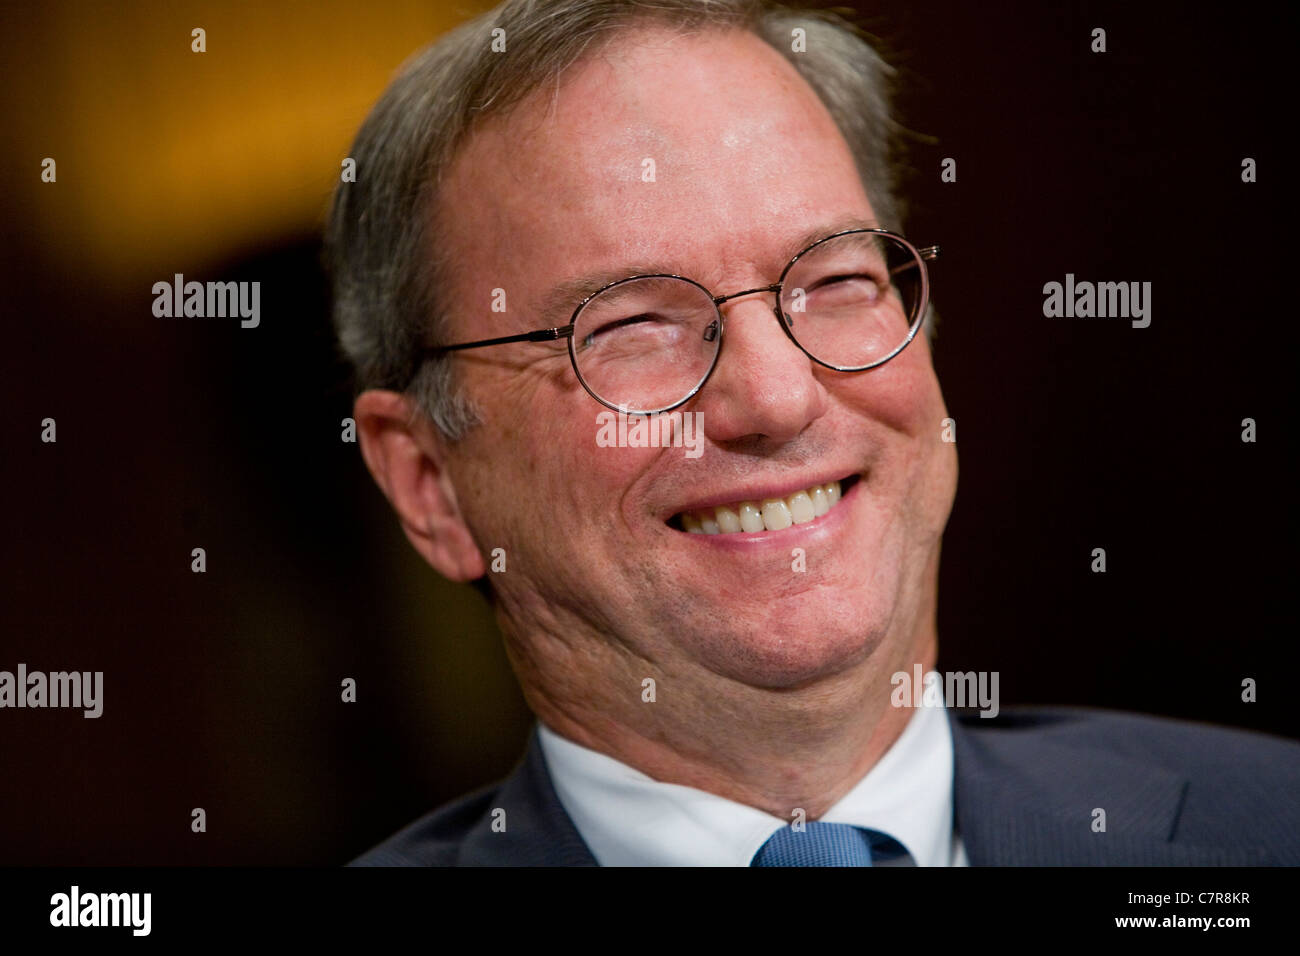 Former Google CEO and current Executive Chairman Eric Schmidt. - Stock Image